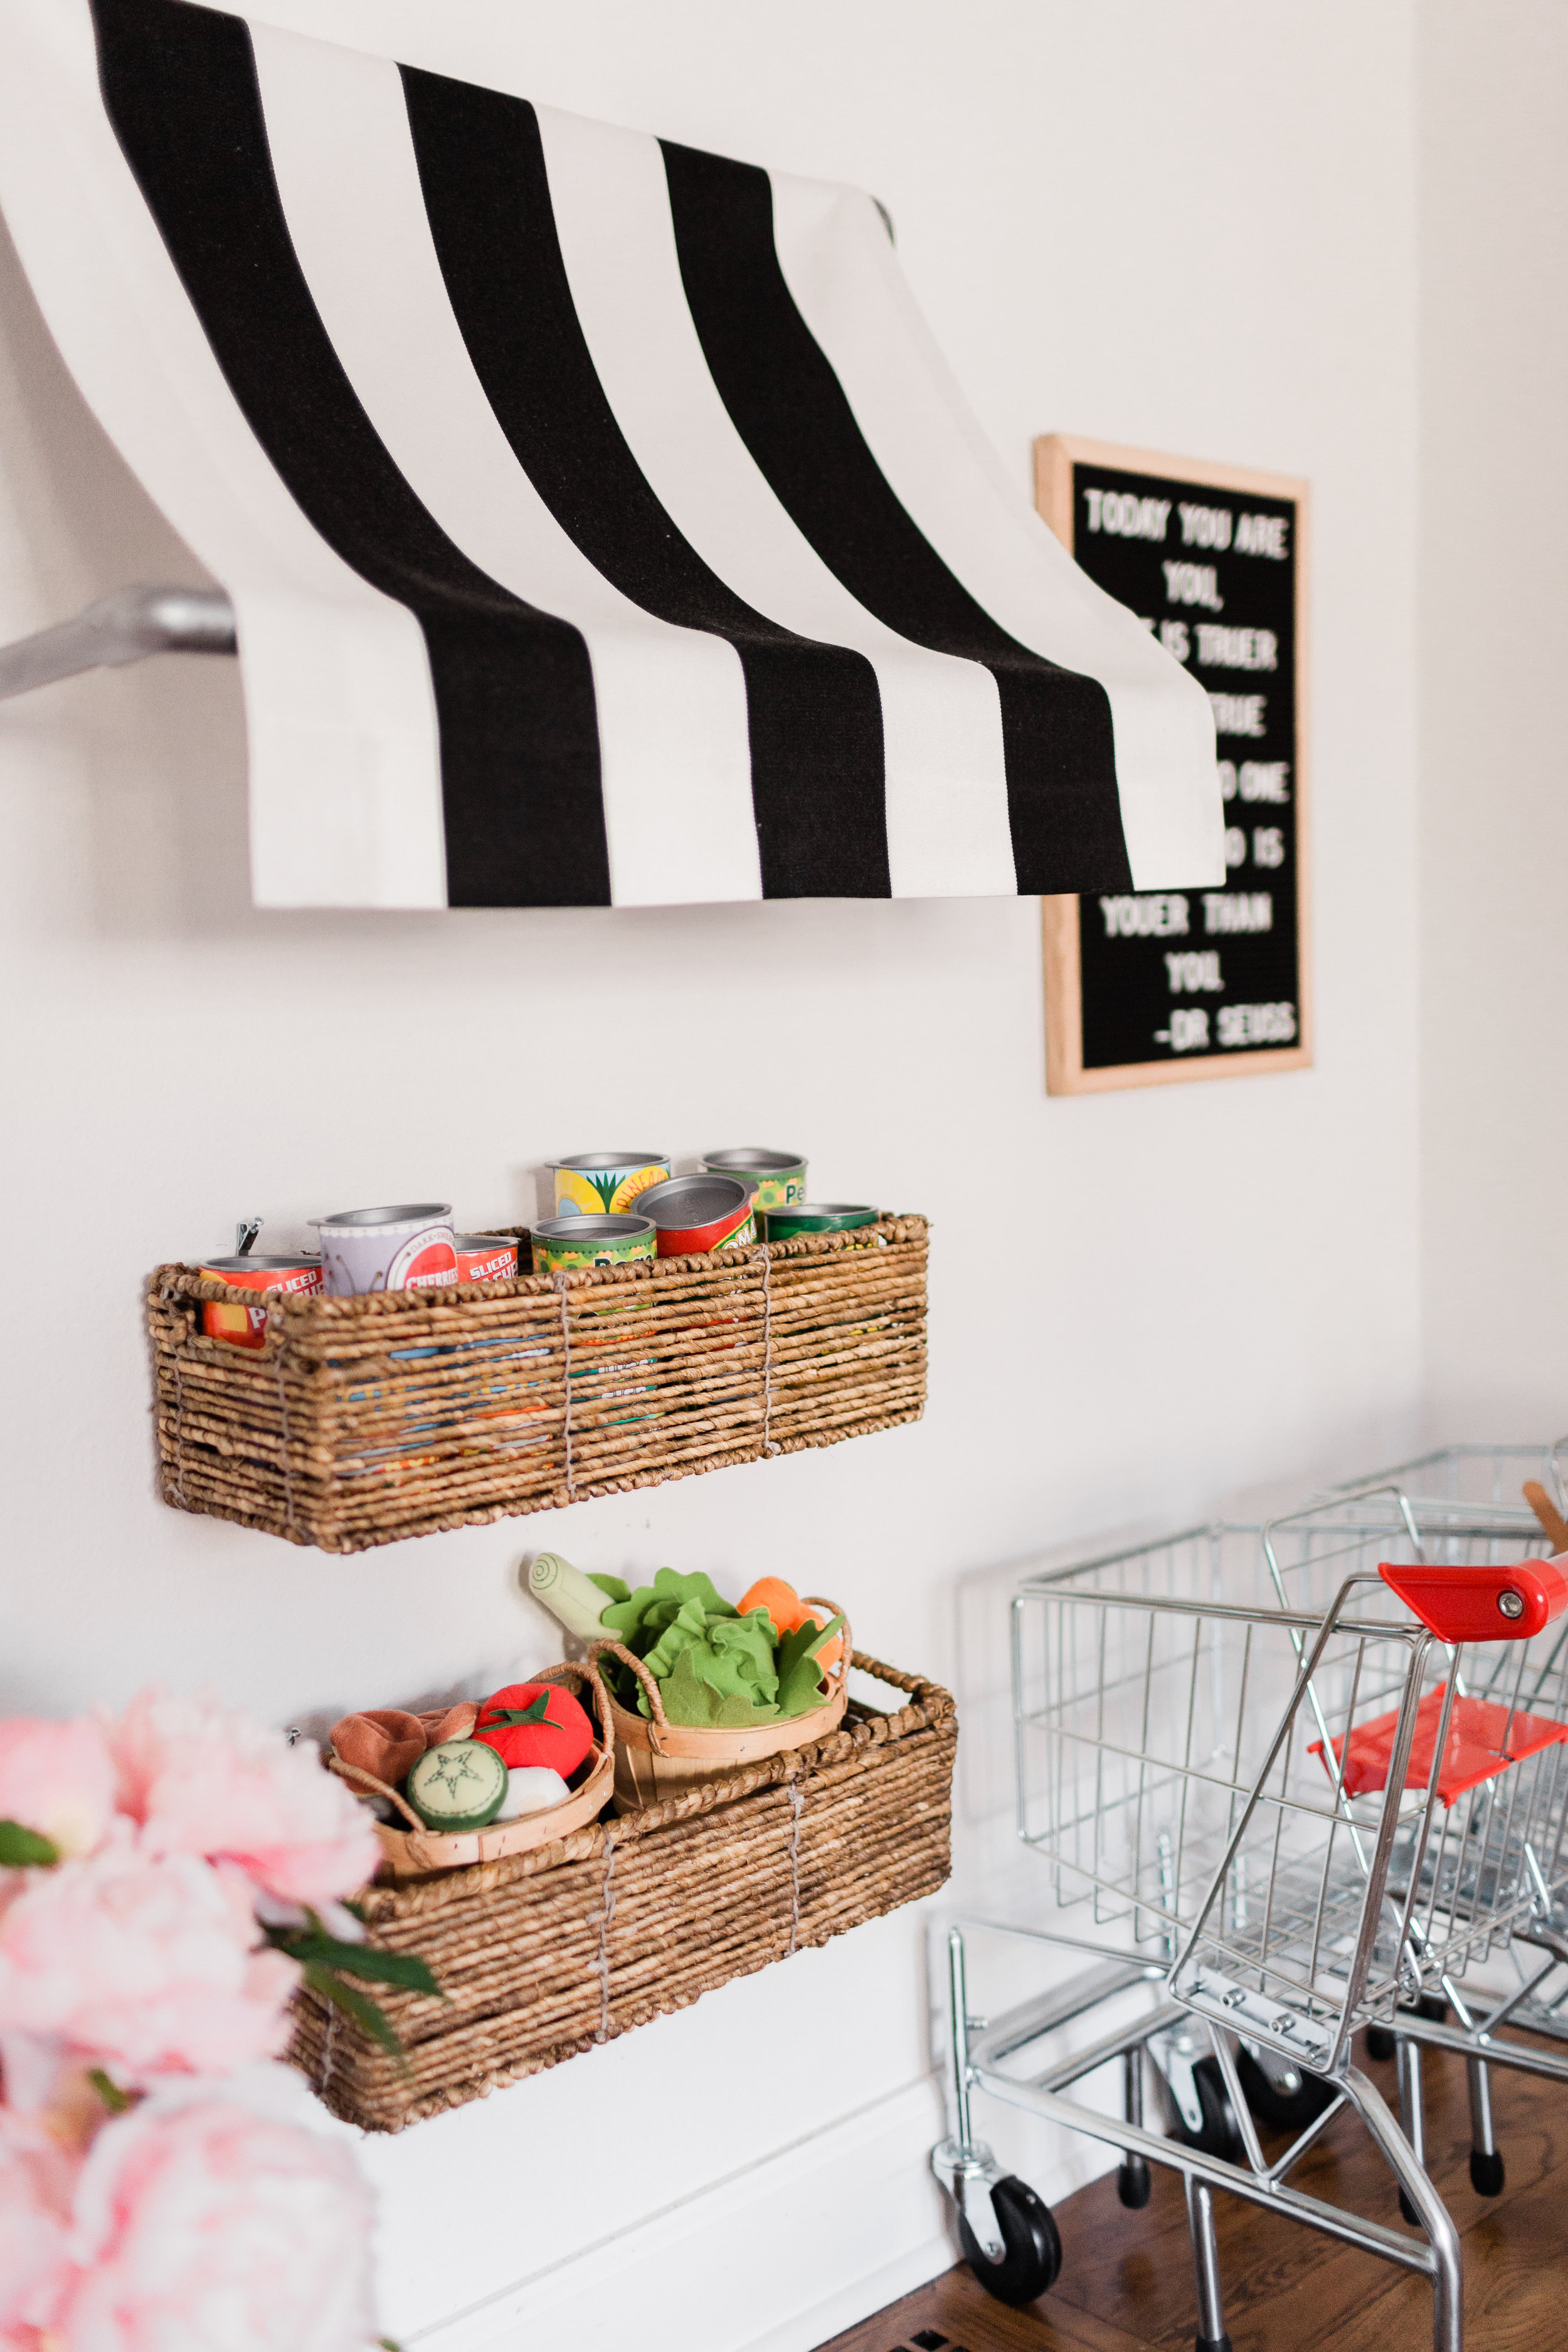 Cheery Modern Eclectic Playroom Interior Design by Harper Rae Design Co